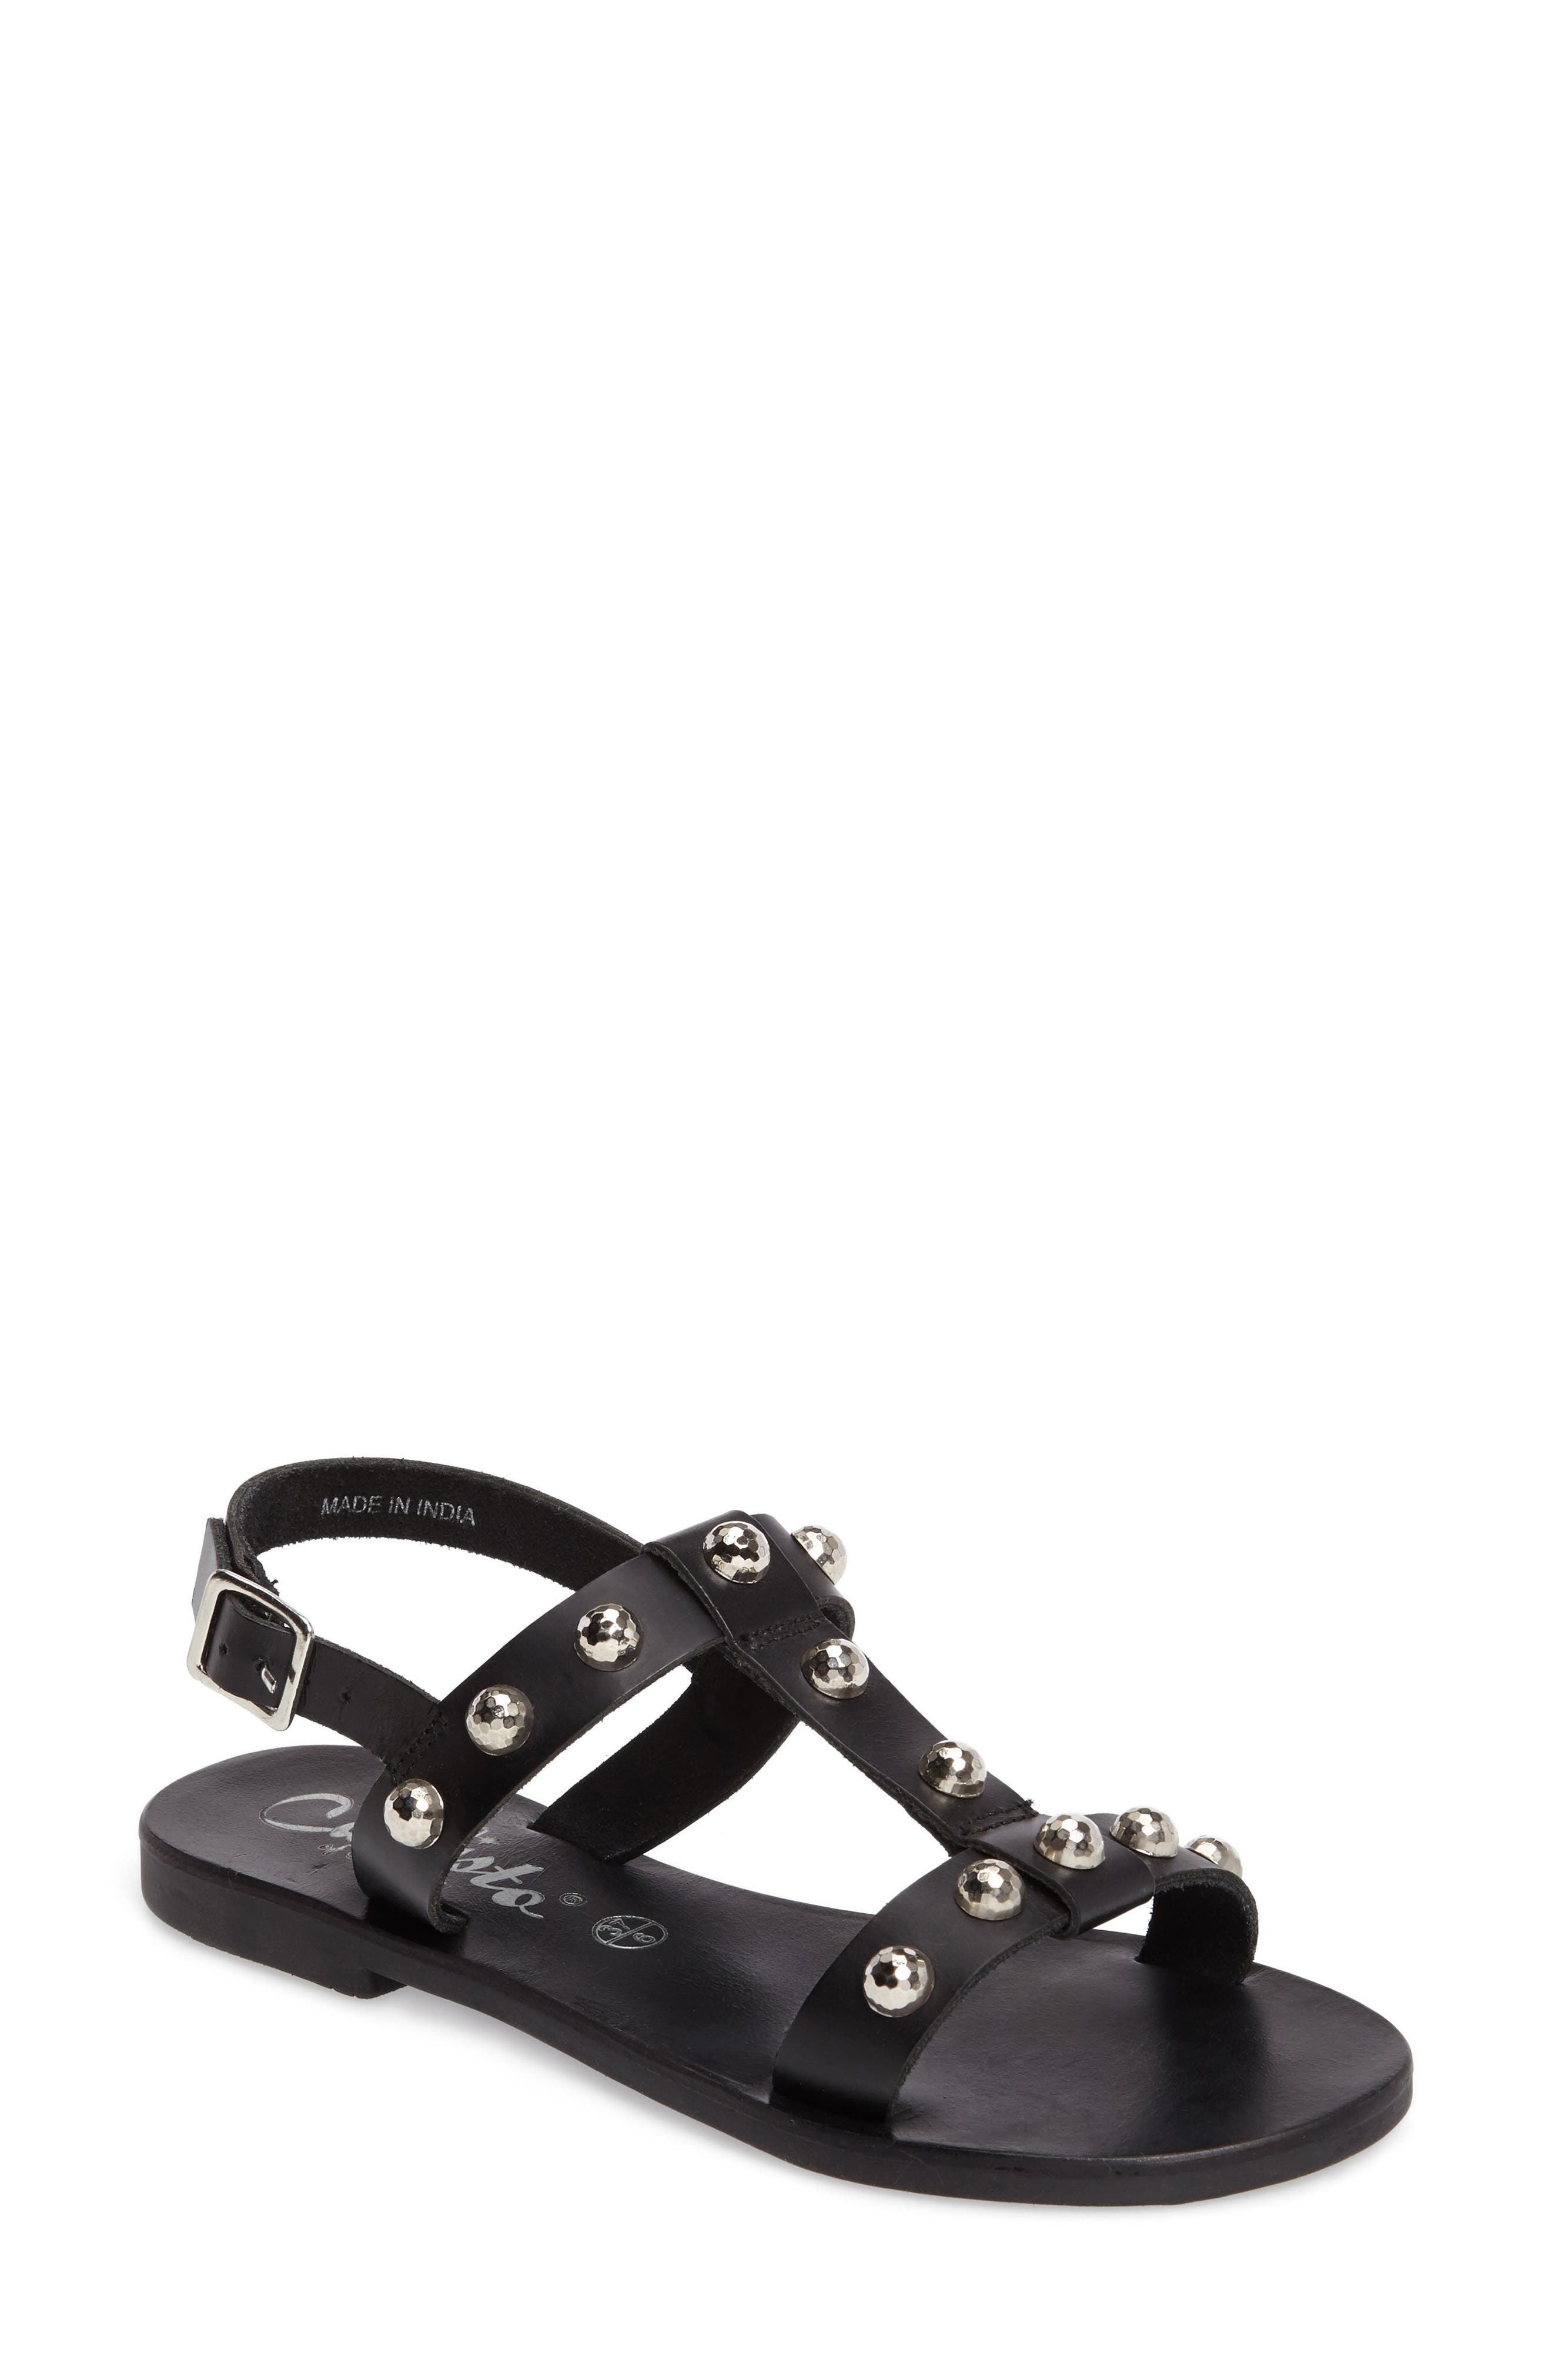 Bristol Sandal,                         Main,                         color, Black Leather